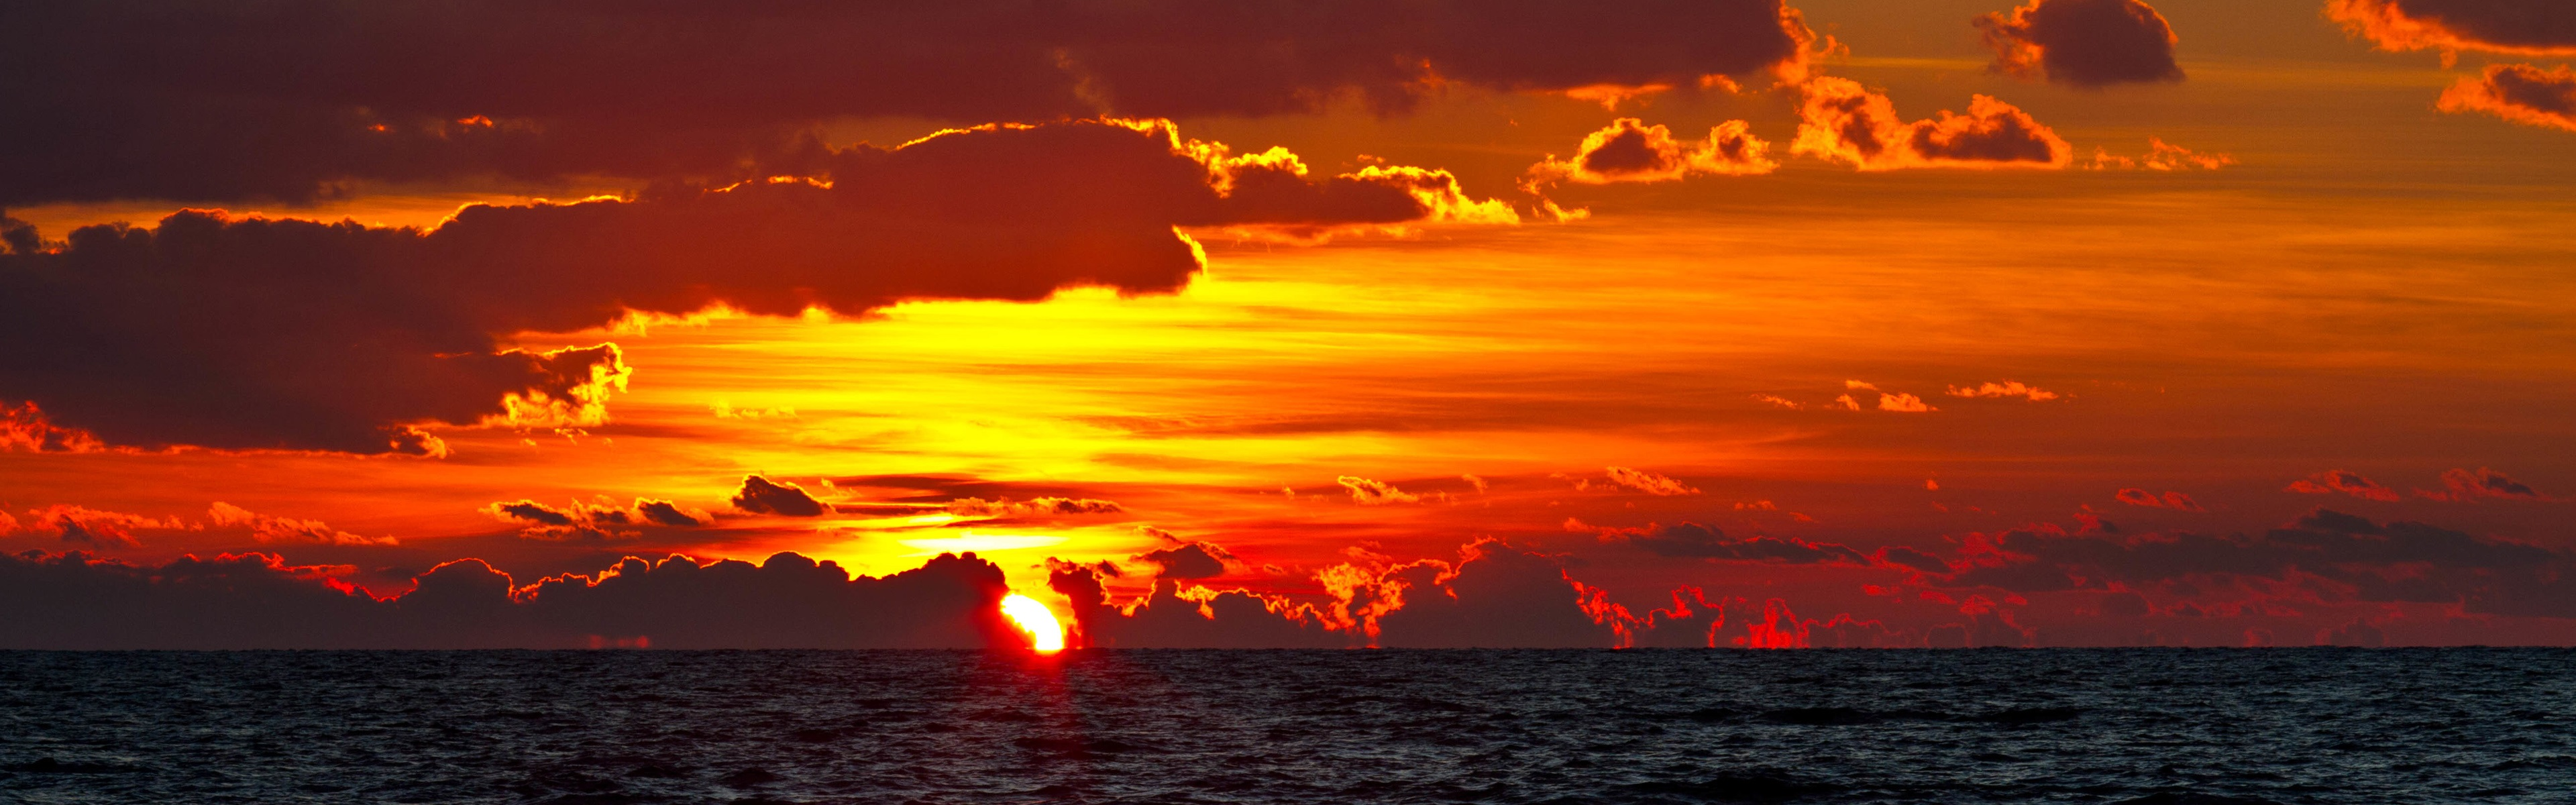 Wallpaper Sea, sunset, clouds, red sky 3840x2160 UHD 4K Picture, Image